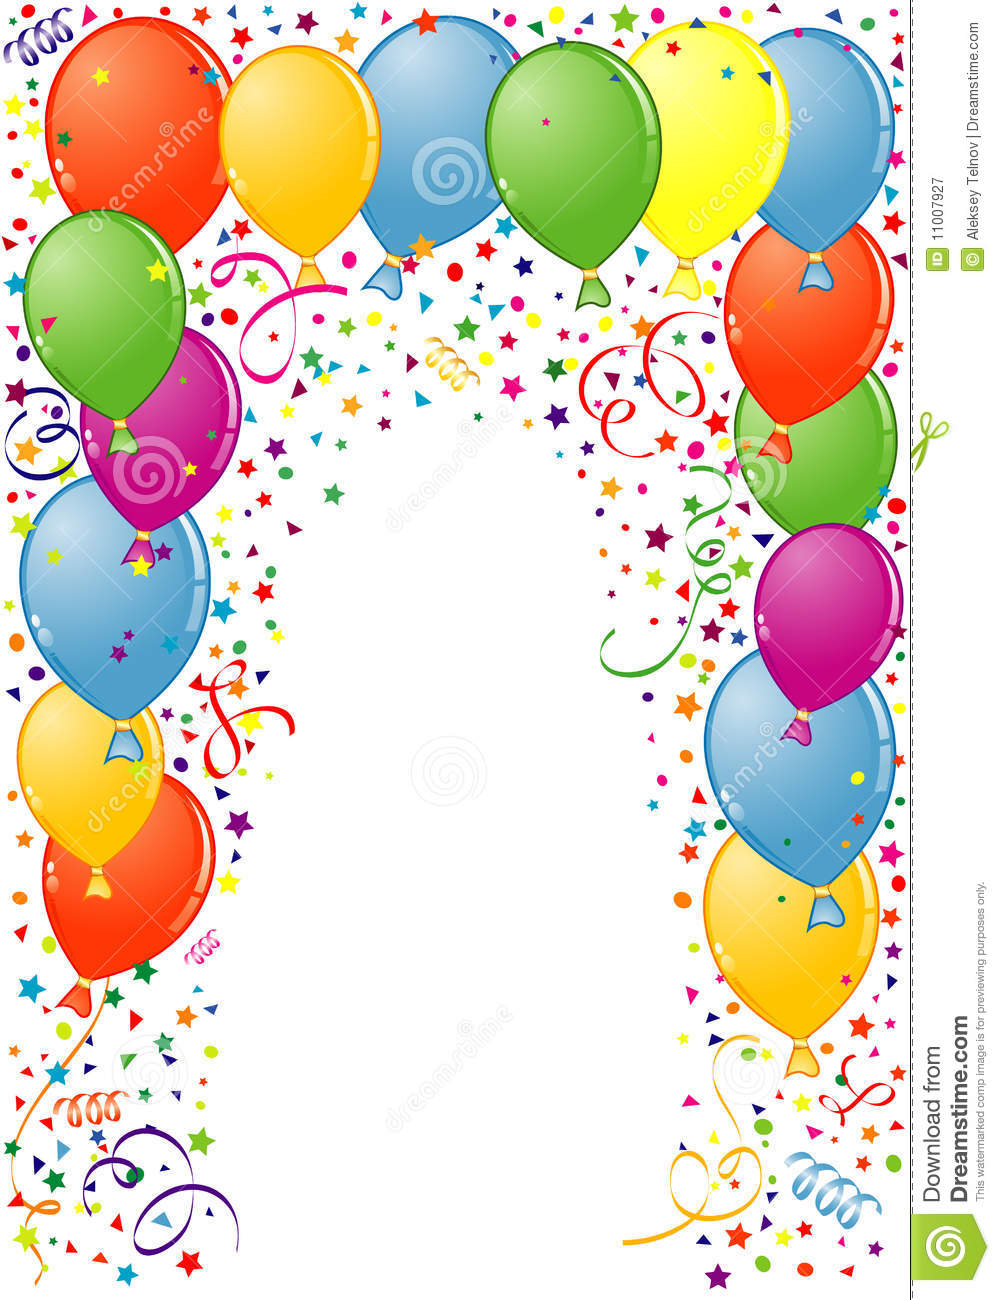 Happy Birthday Frame Clipart - Clipart Kid